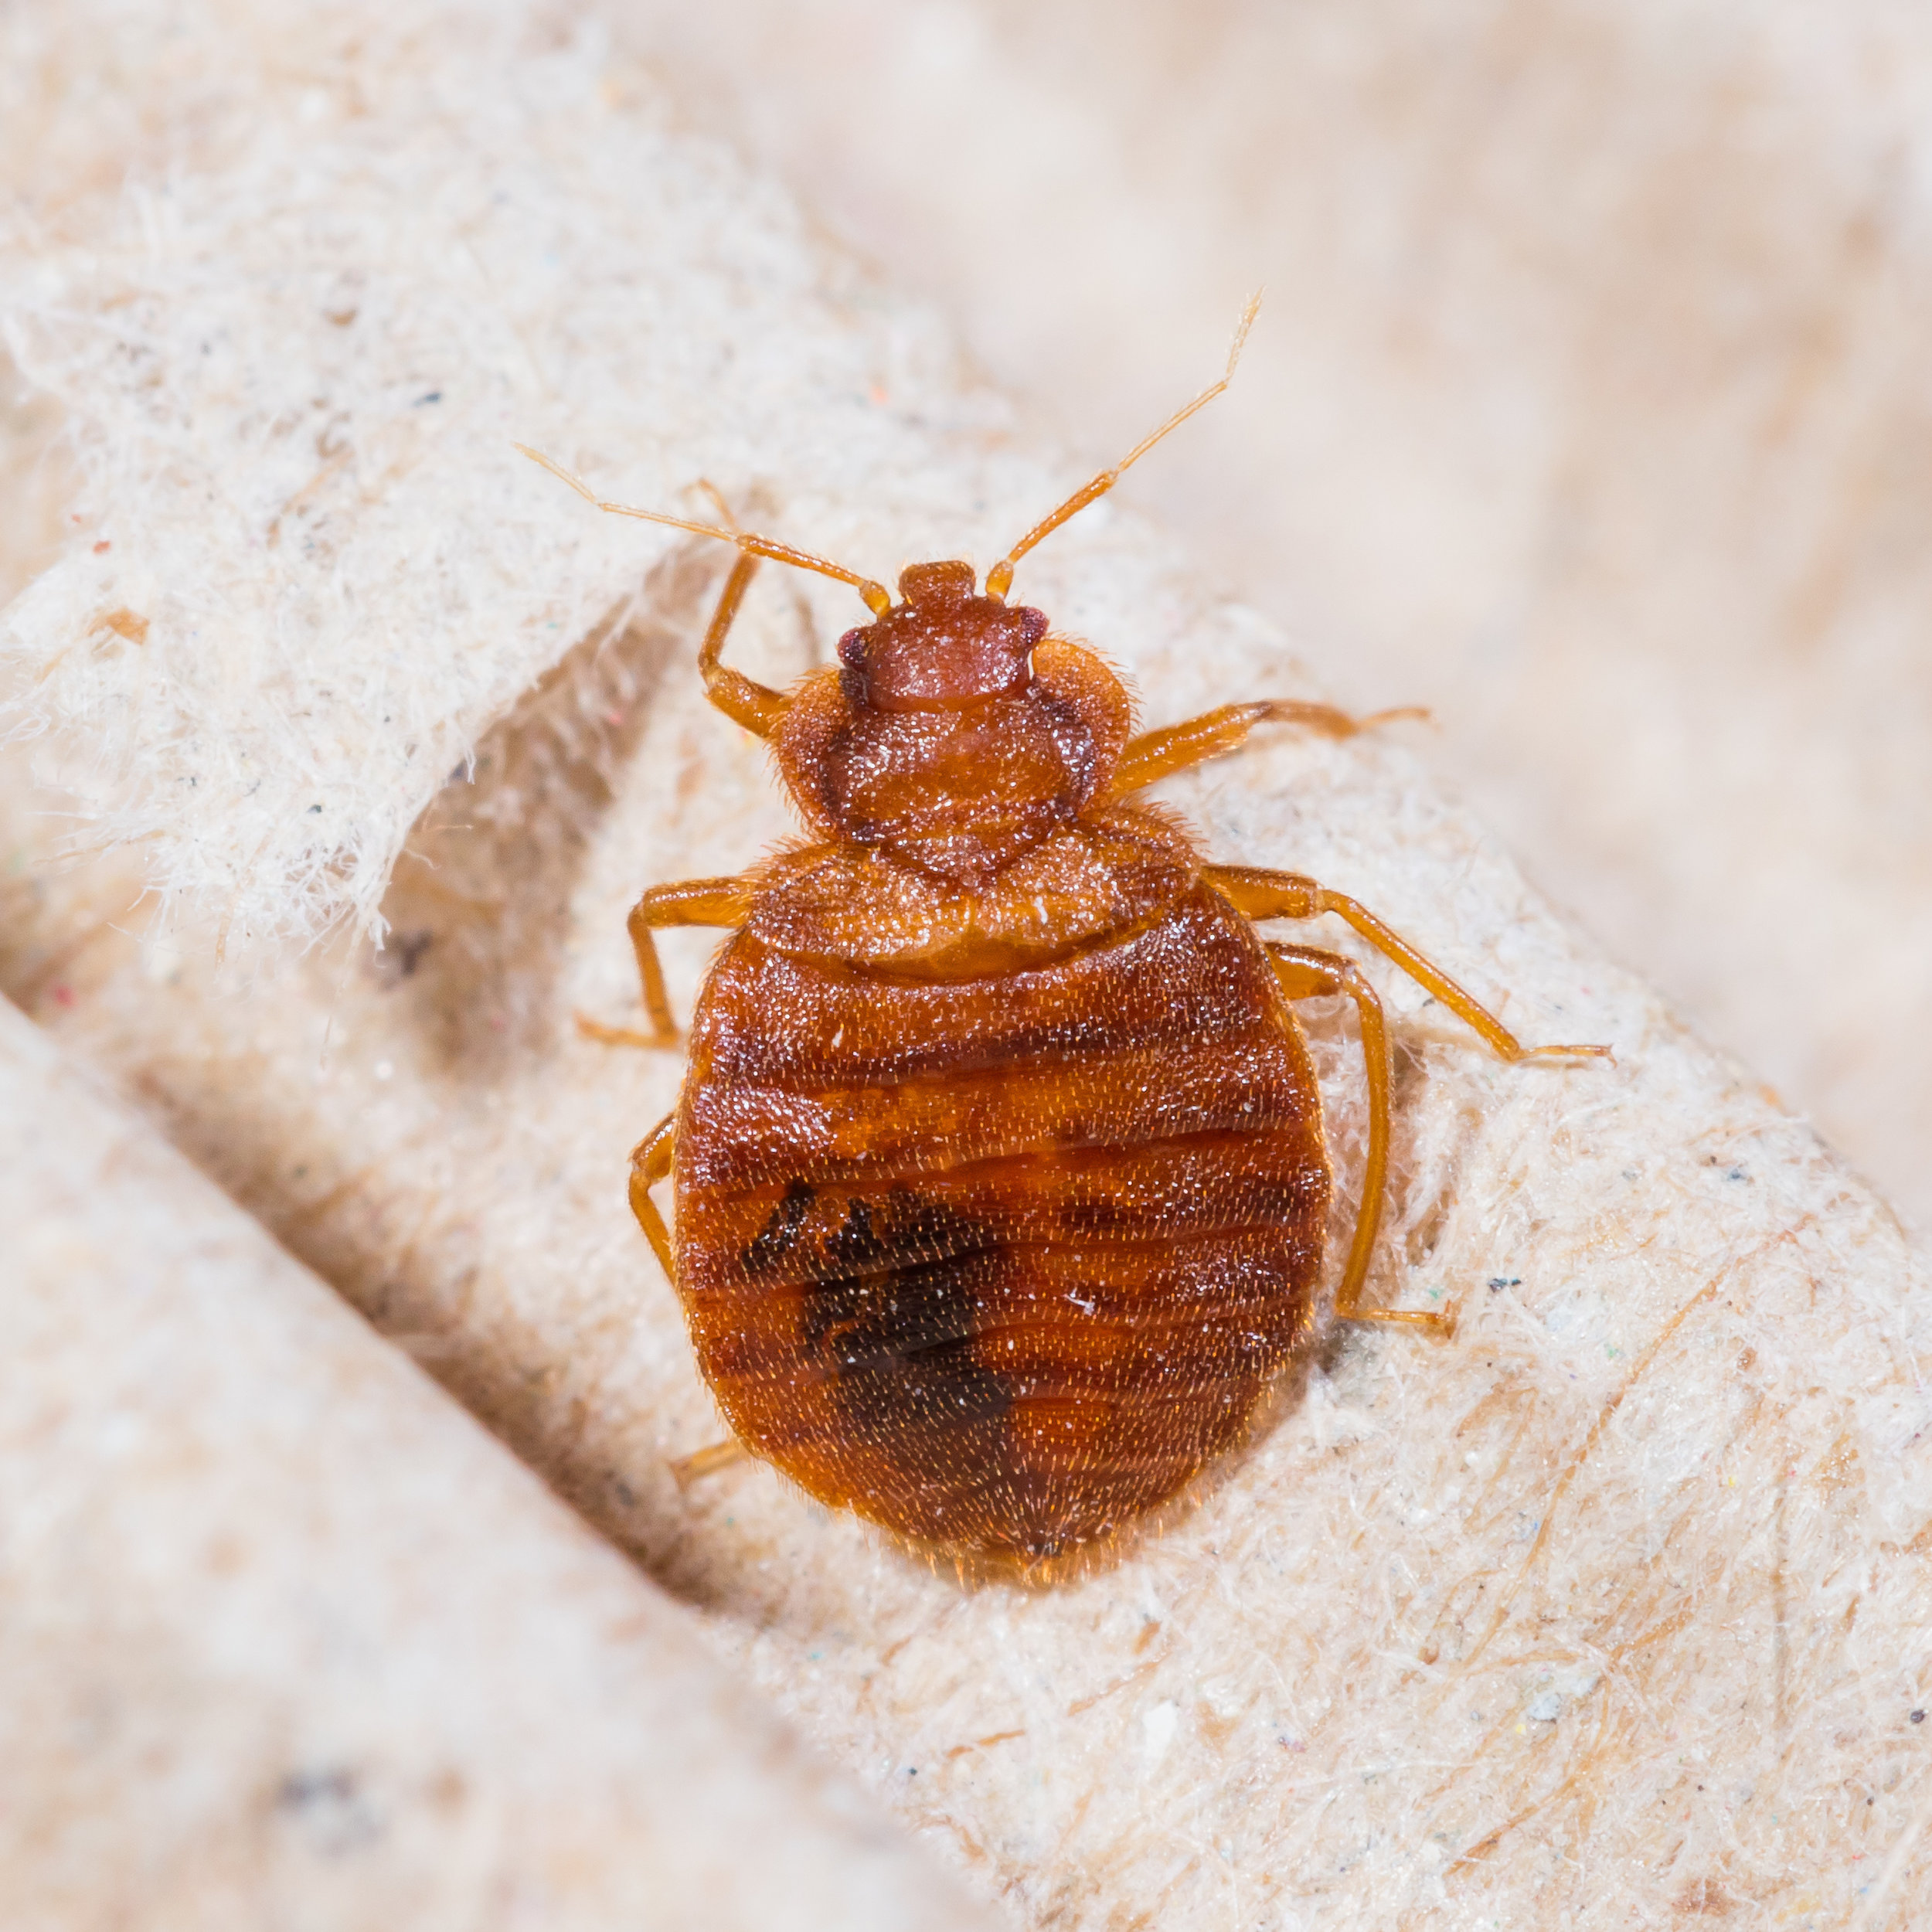 Top X Bed Bug Treatment Options in the NYC Area